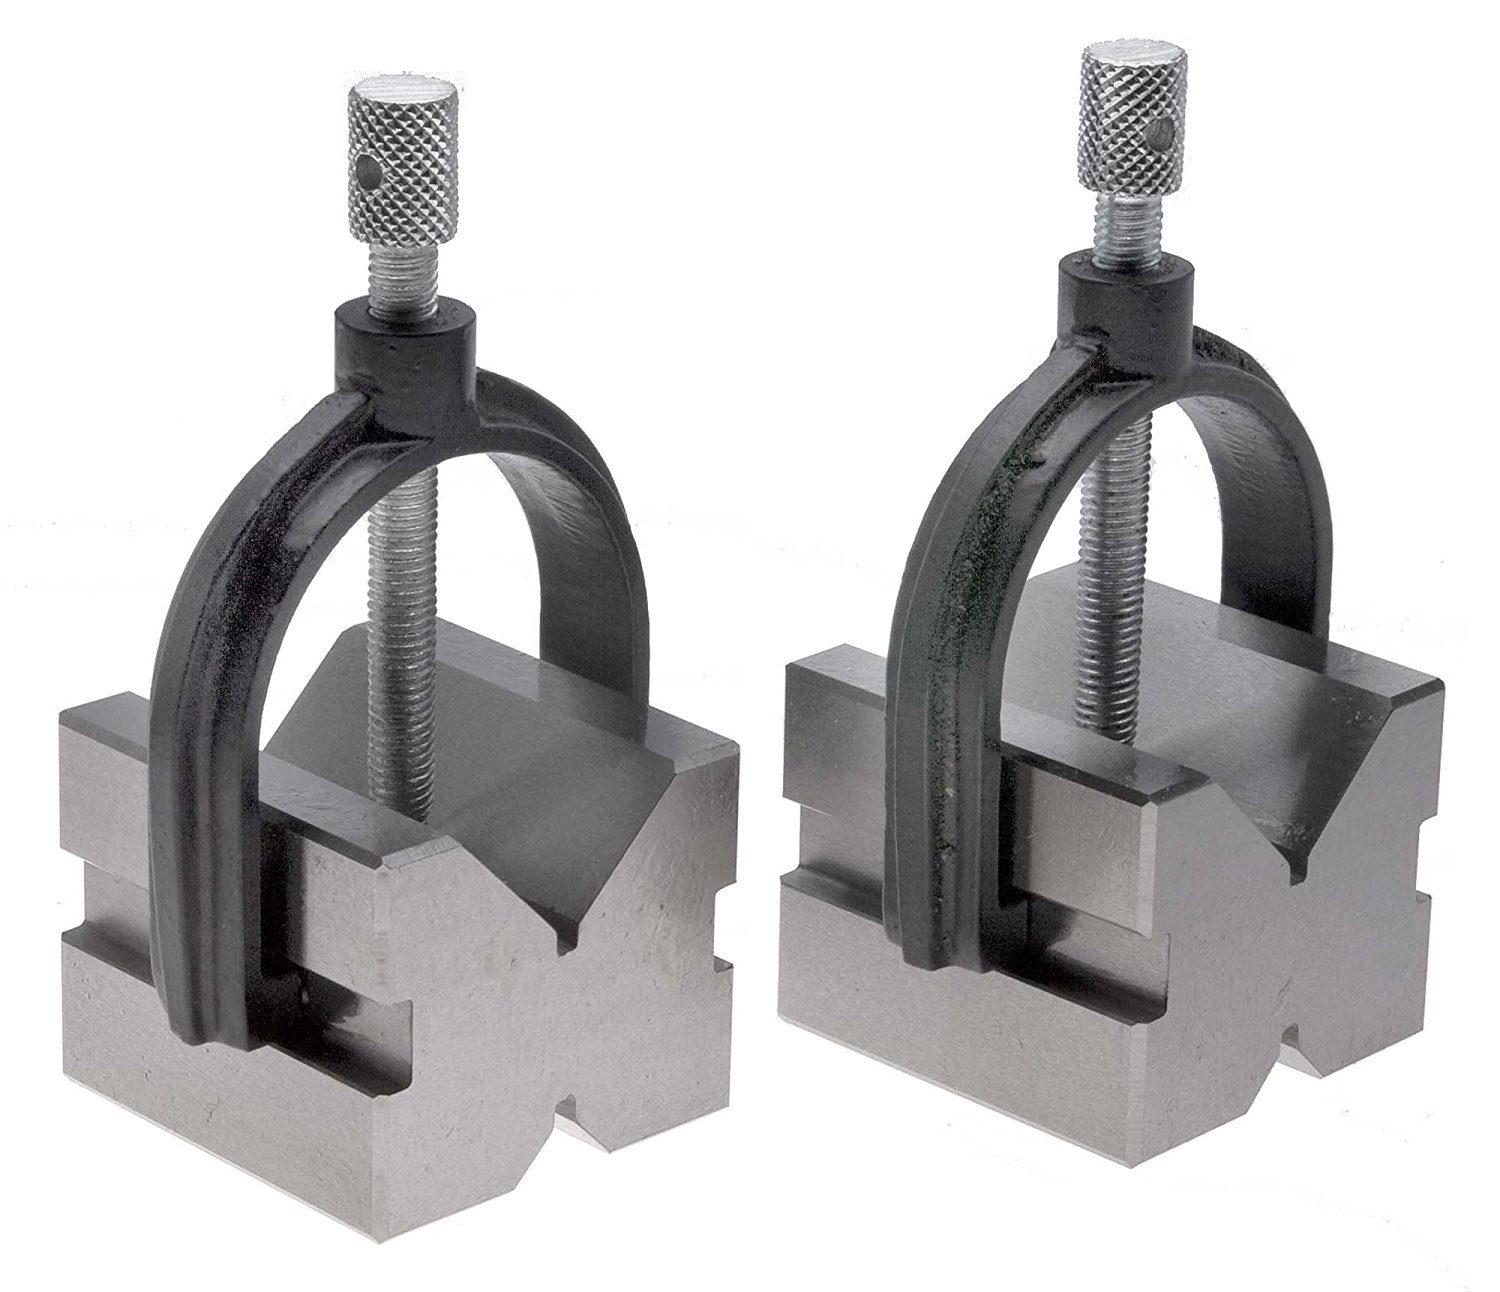 1-5//8 x 1-3//4 x 2-3//4 V-Block and Clamp